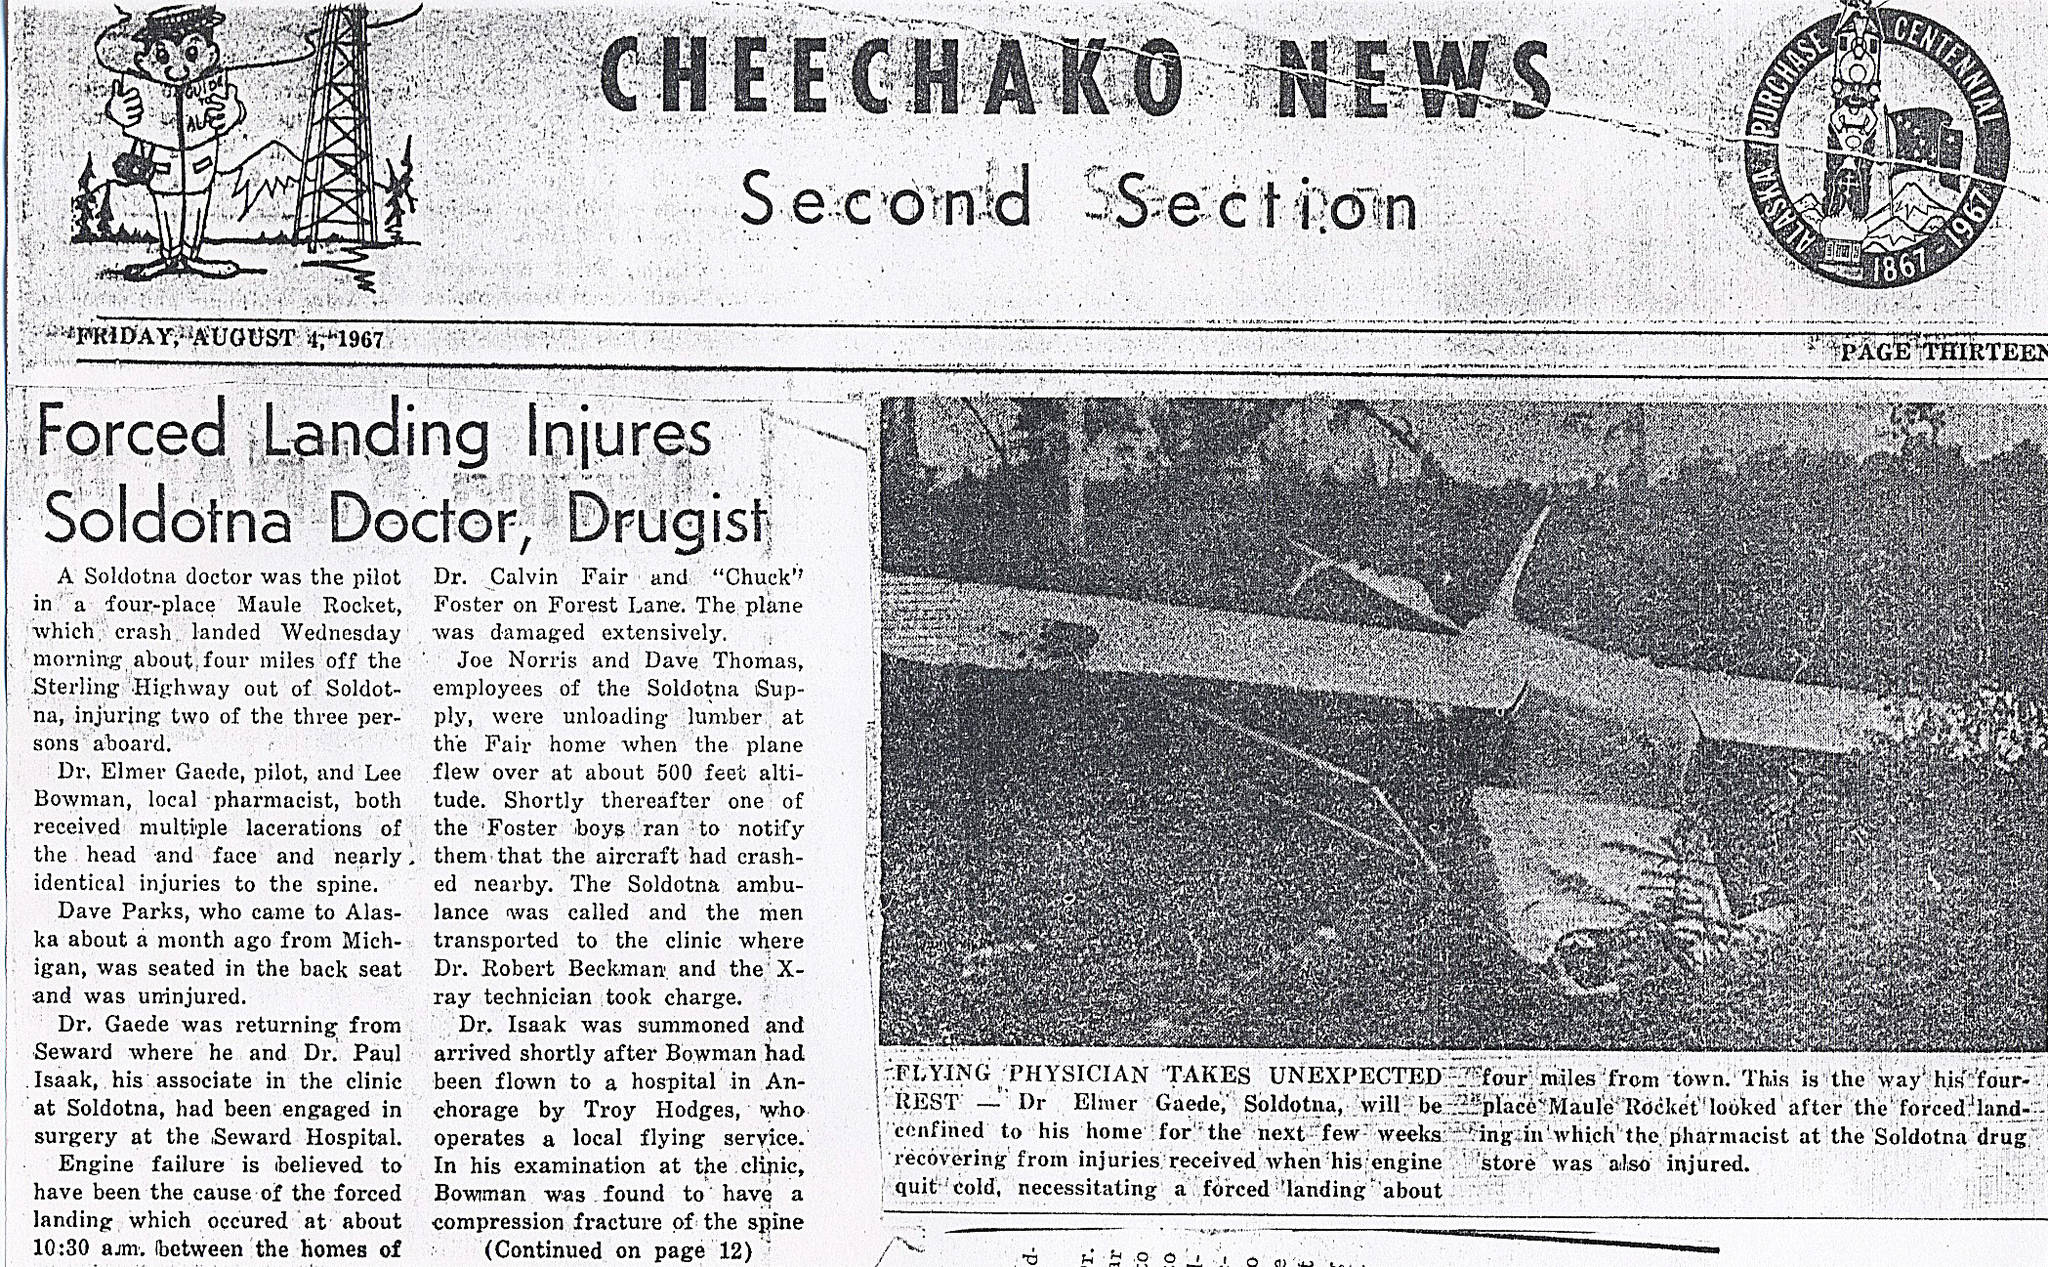 Photo courtesy of the Gaede Collection  This article and photo about the wreck of Dr. Elmer Gaede's plane appeared on the front page of the second section of the Cheechako News on Friday, Aug. 4, 1967.